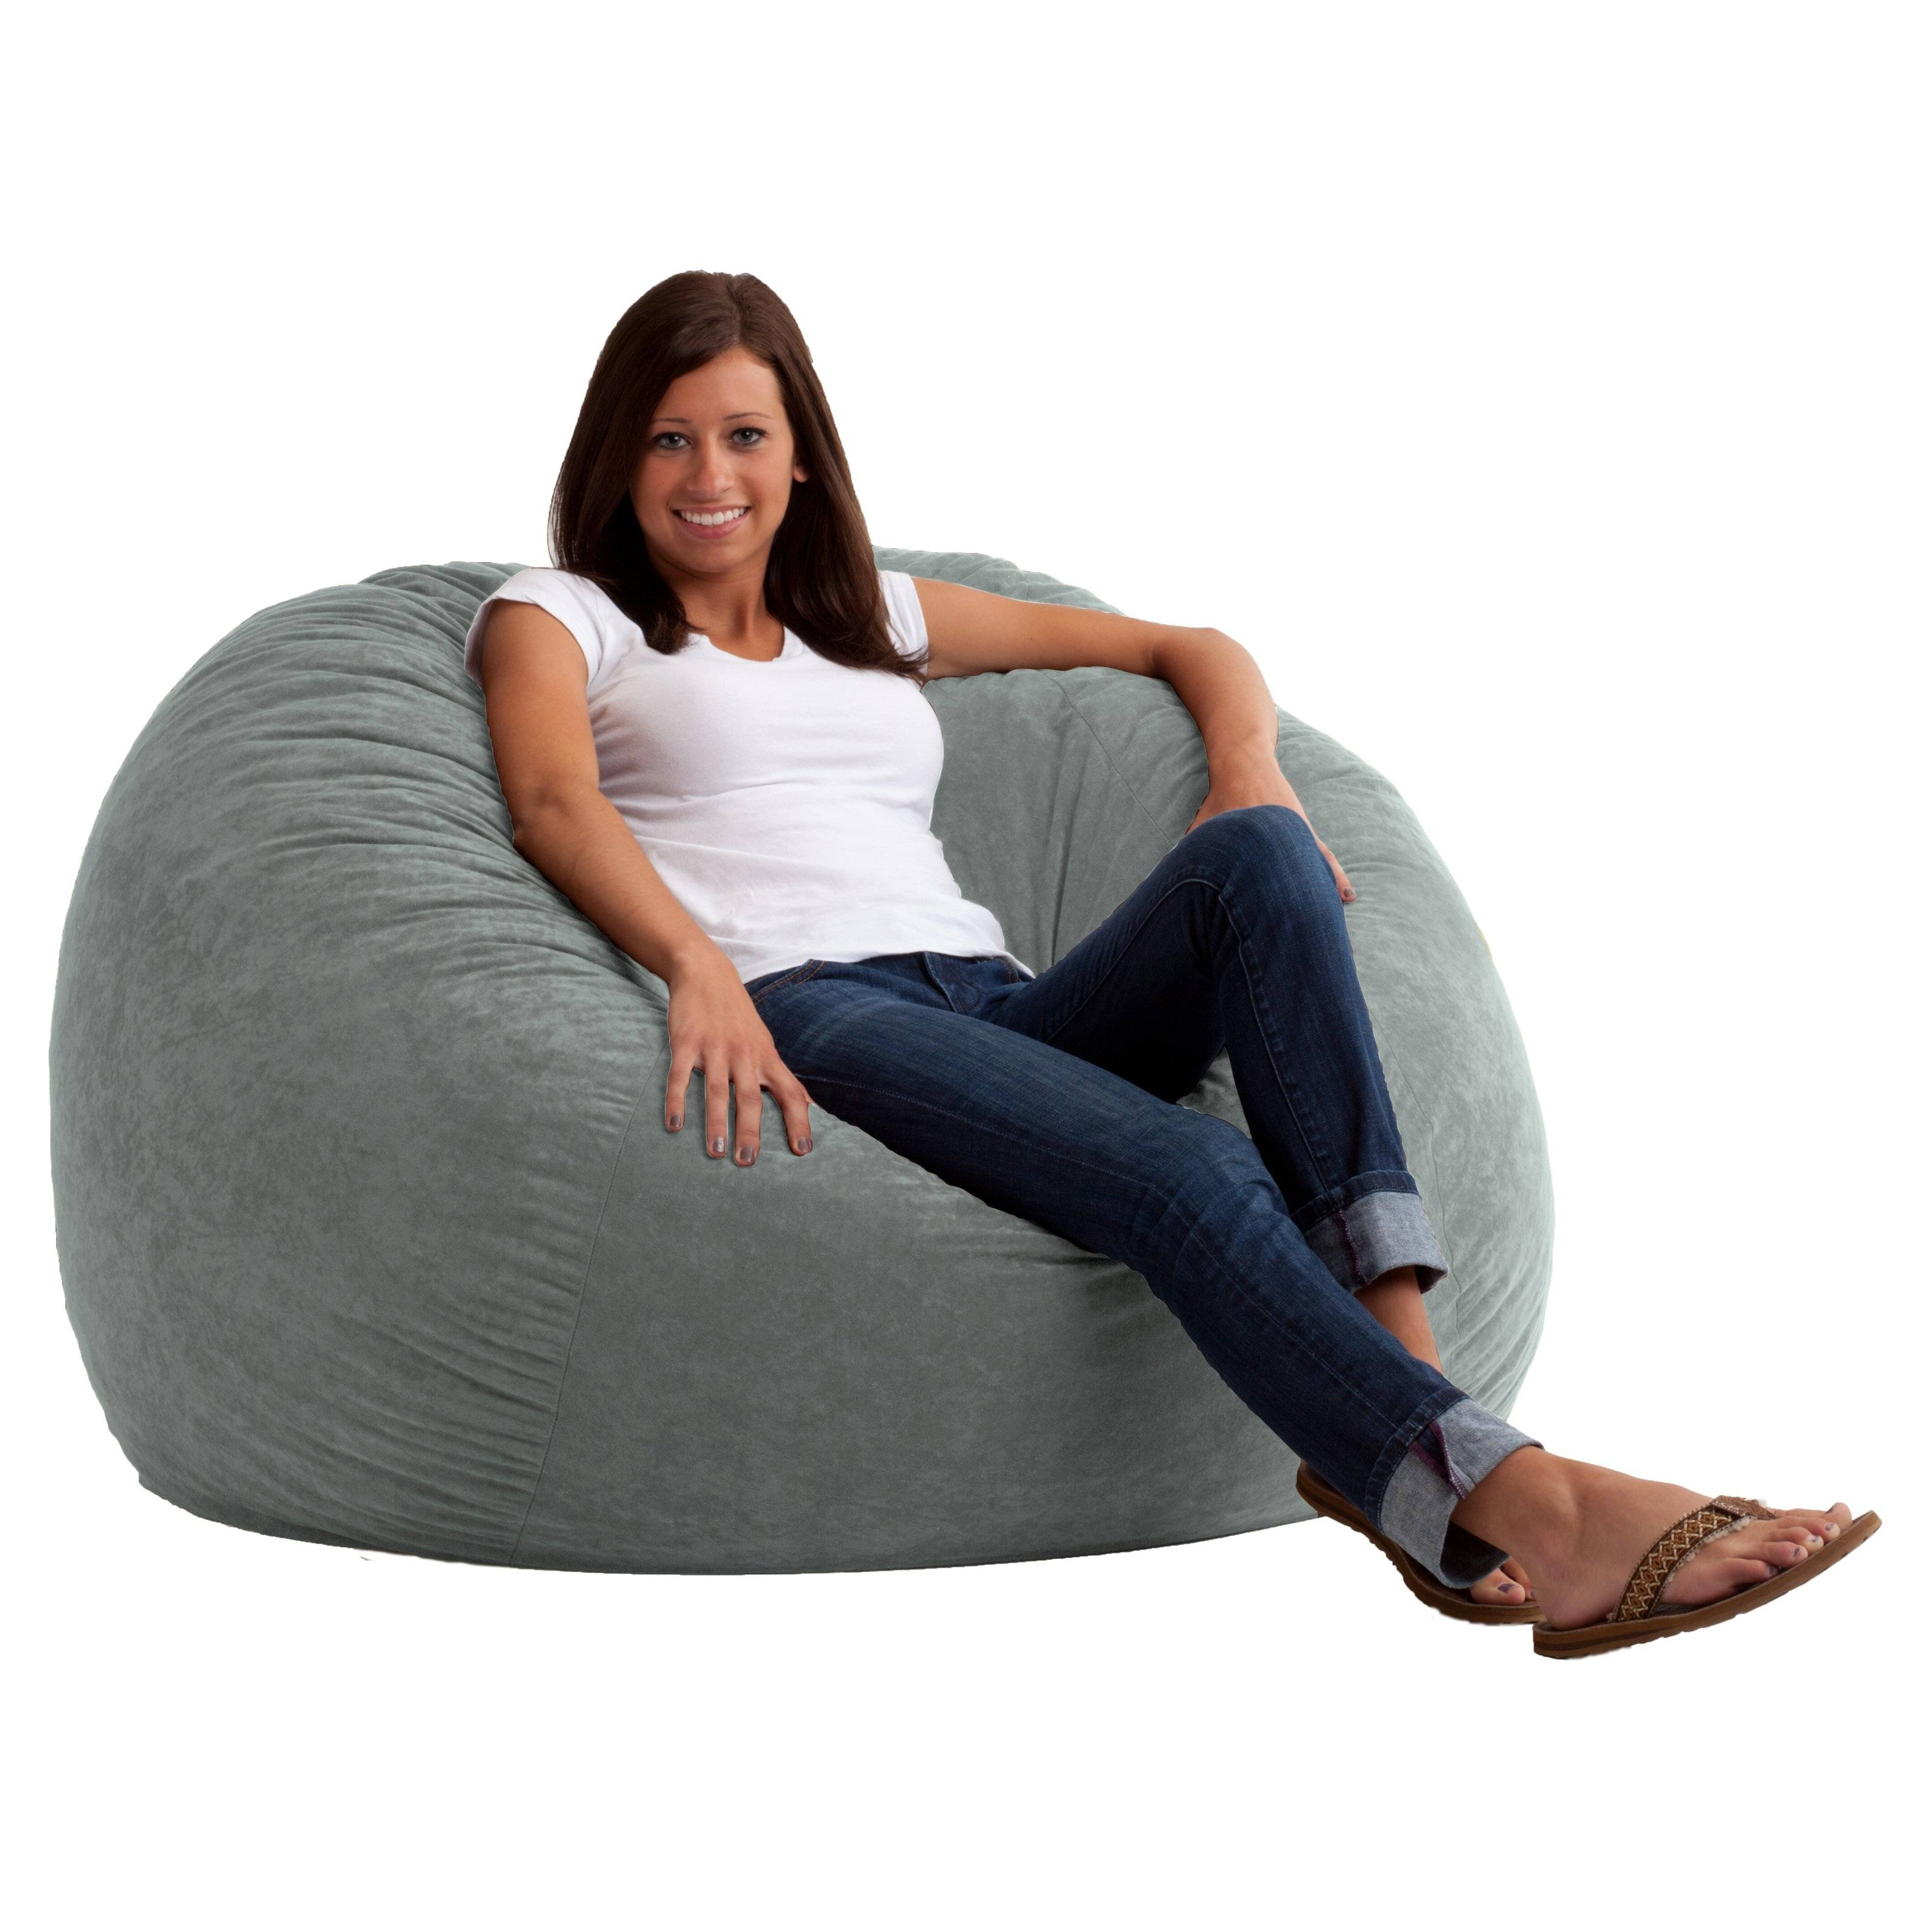 Fuf 6 Ft. Xl Comfort Suede Bean Bag Sofa | Hayneedle with regard to Bean Bag Sofa Chairs (Image 13 of 15)